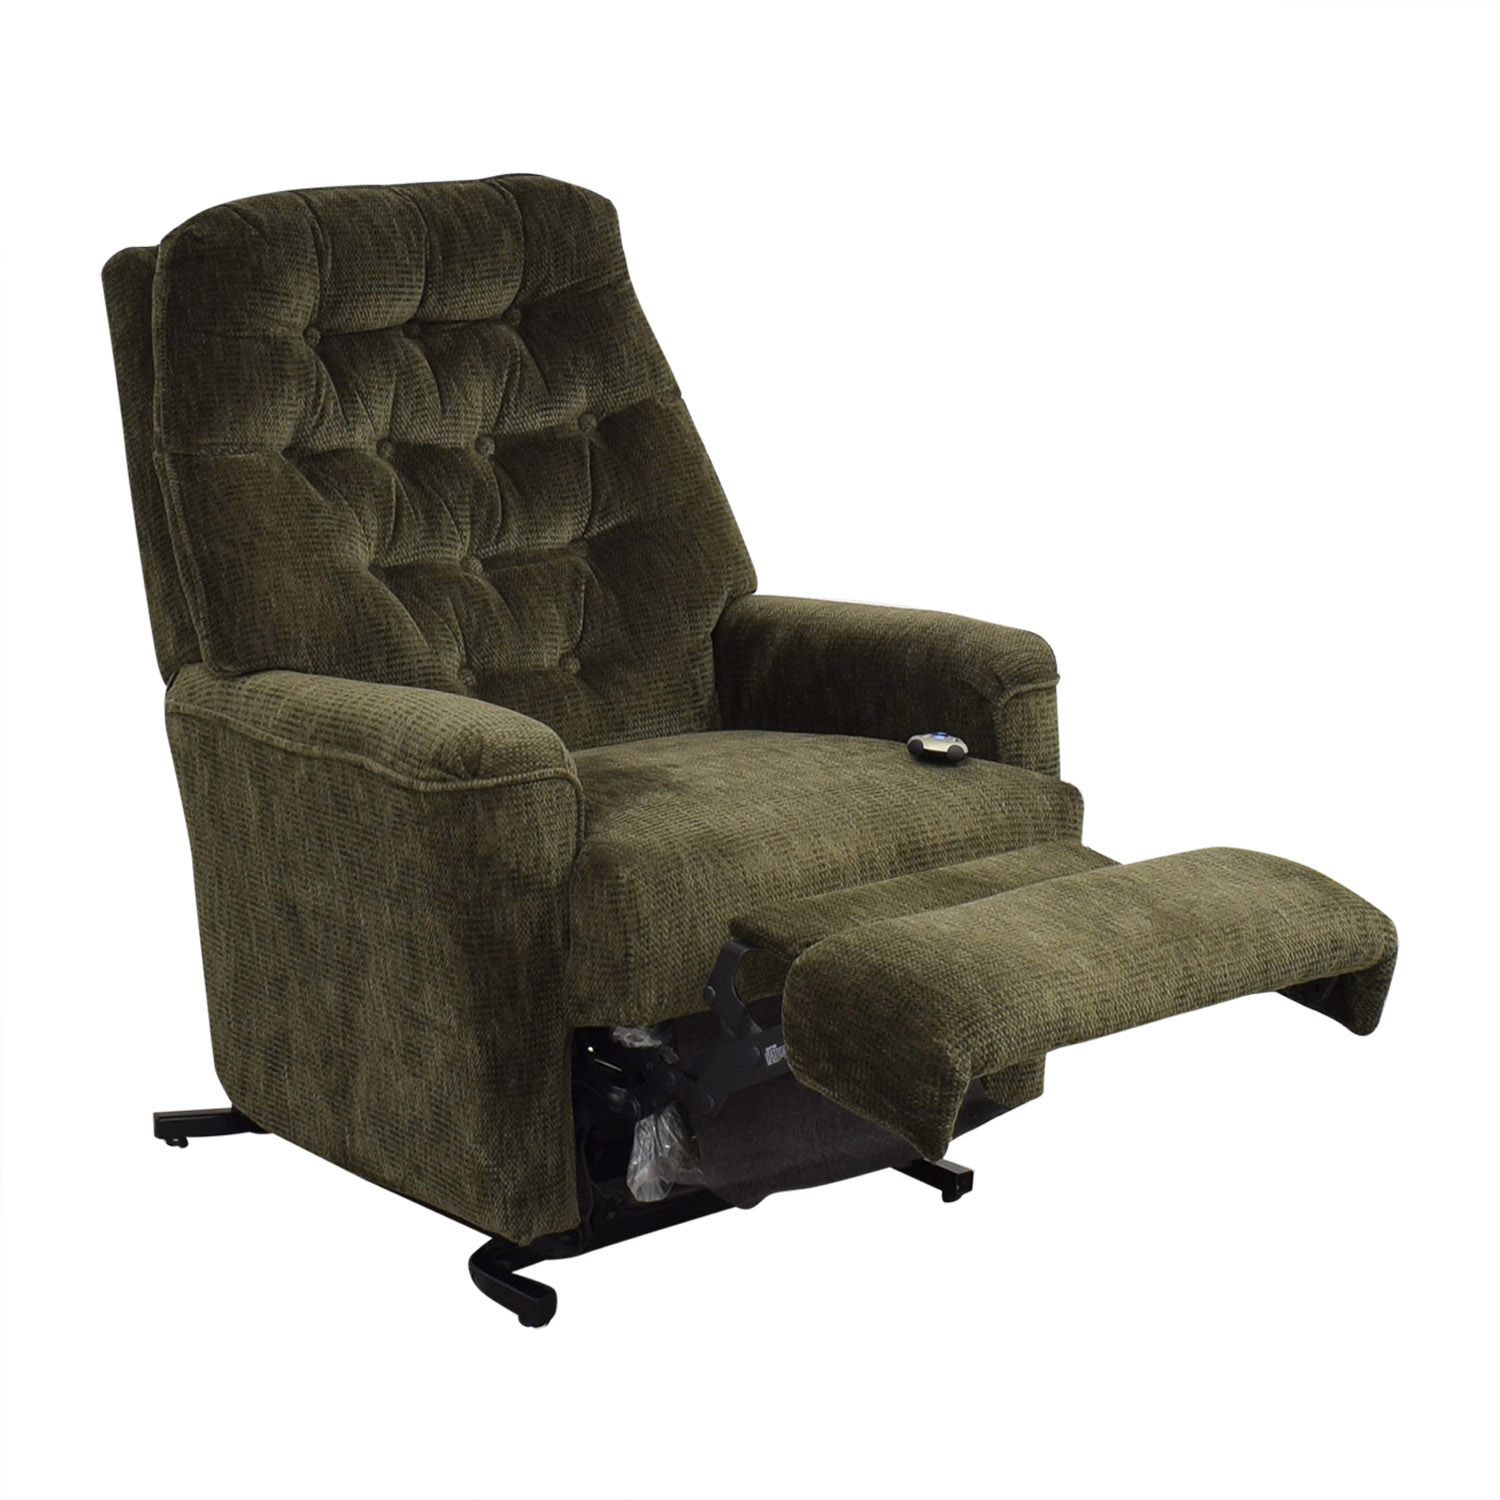 Best Chairs Best Chairs Power Lift Recliner Recliners